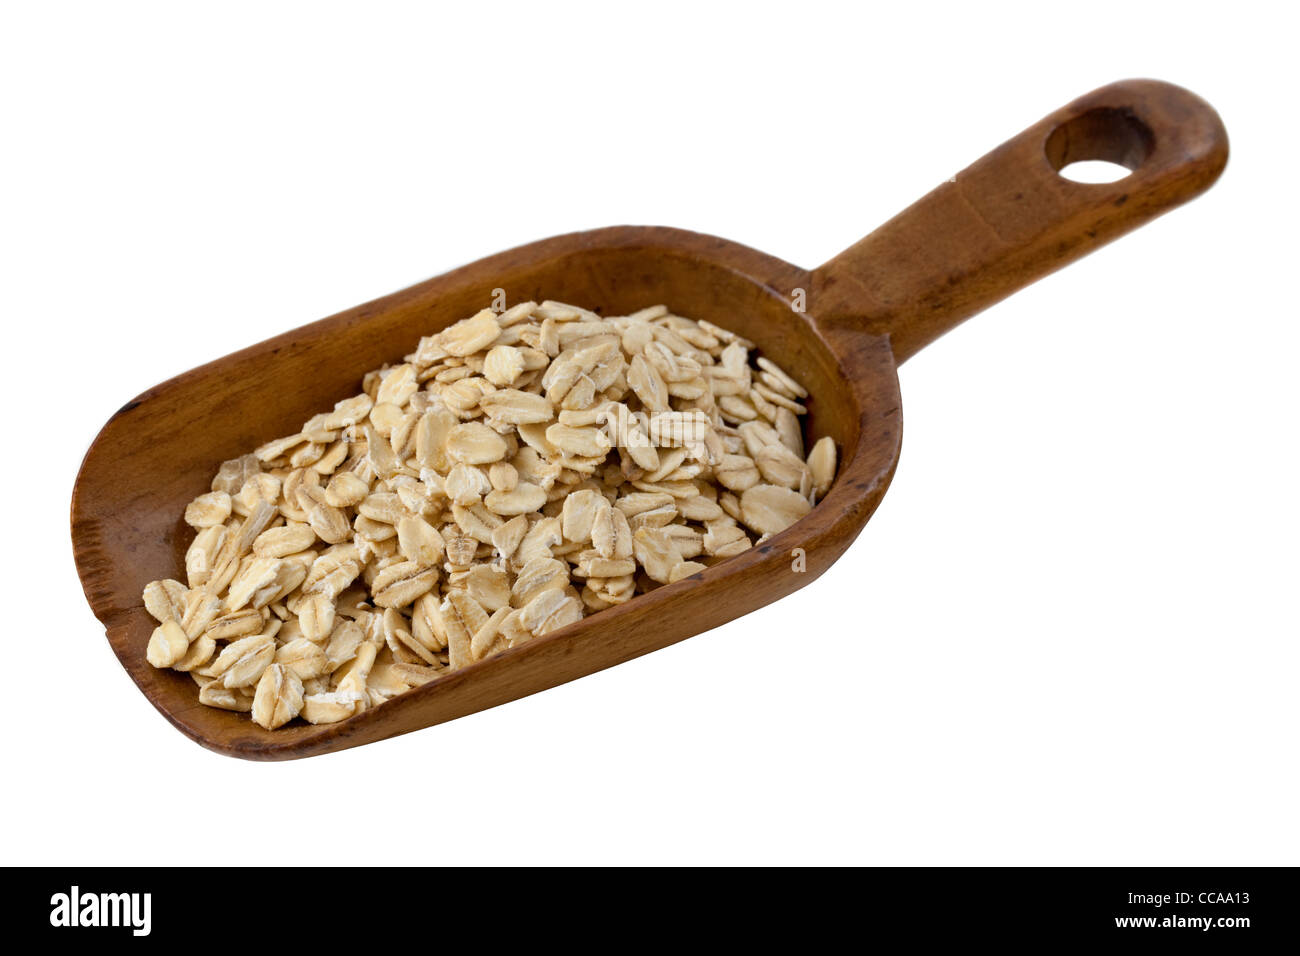 rolled oats on a rustic wooden scoop isolated on white - Stock Image